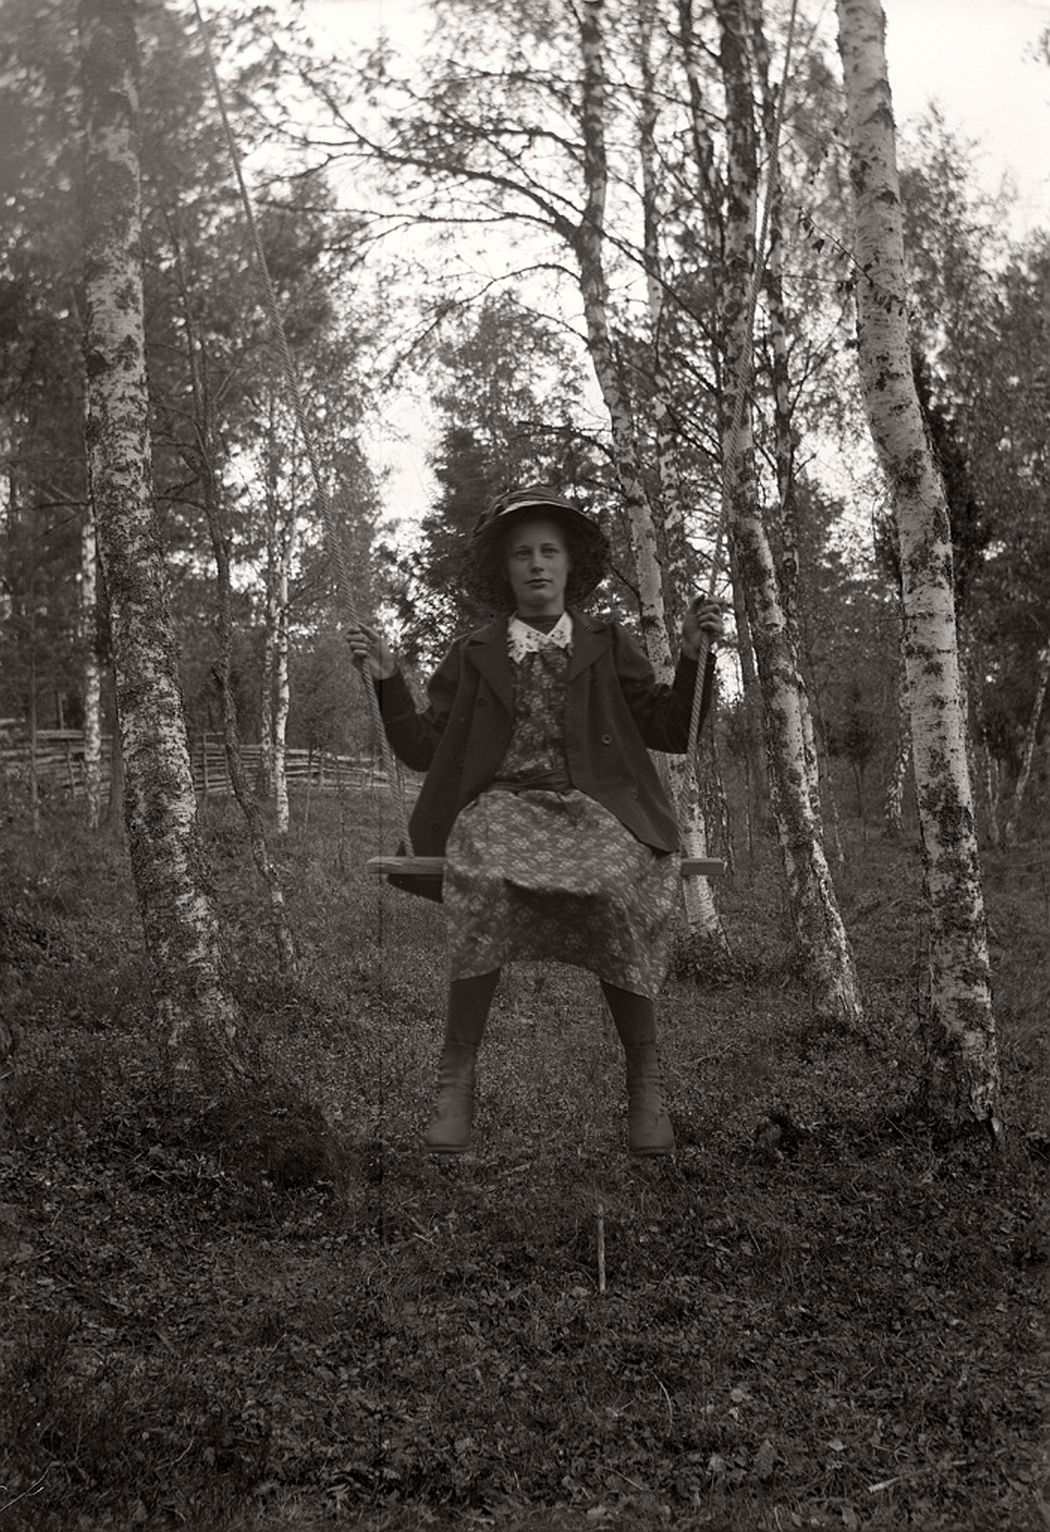 Elin Larsson in the swing, 1914.